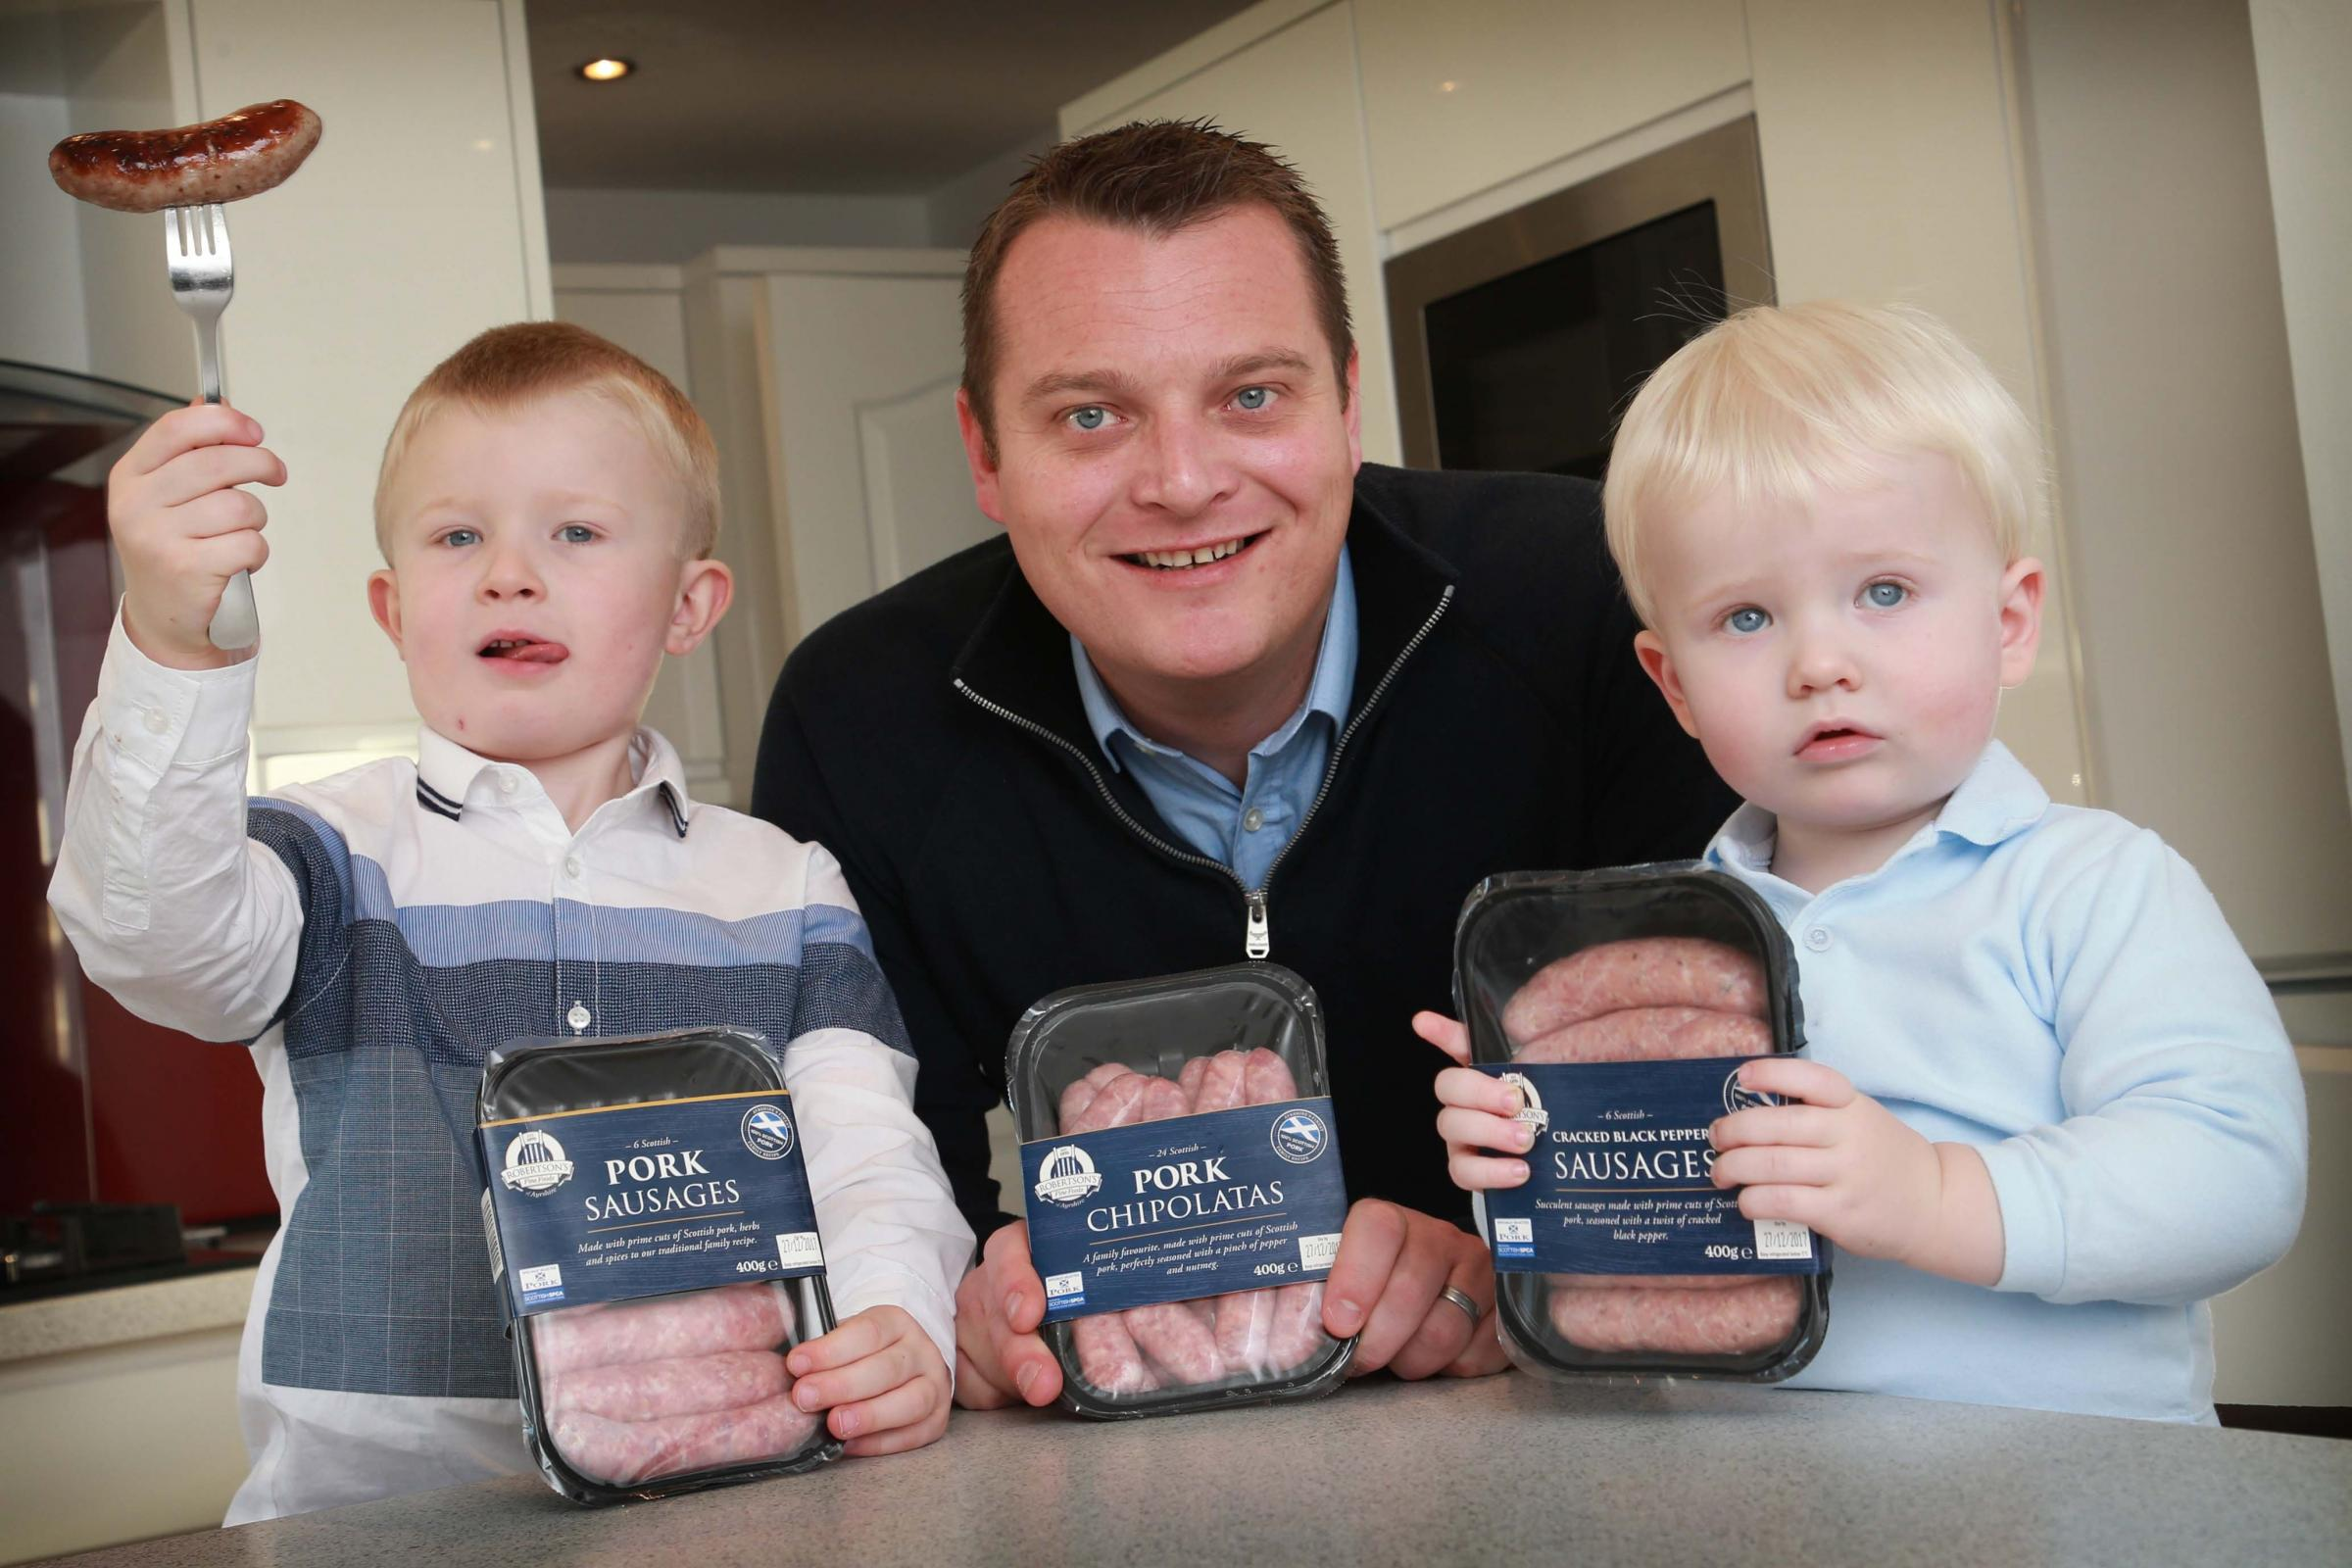 Lewis Robertson, Barry Robertson and Cameron Robertson, road test the family firm's new sausages at their home in Ayrshire